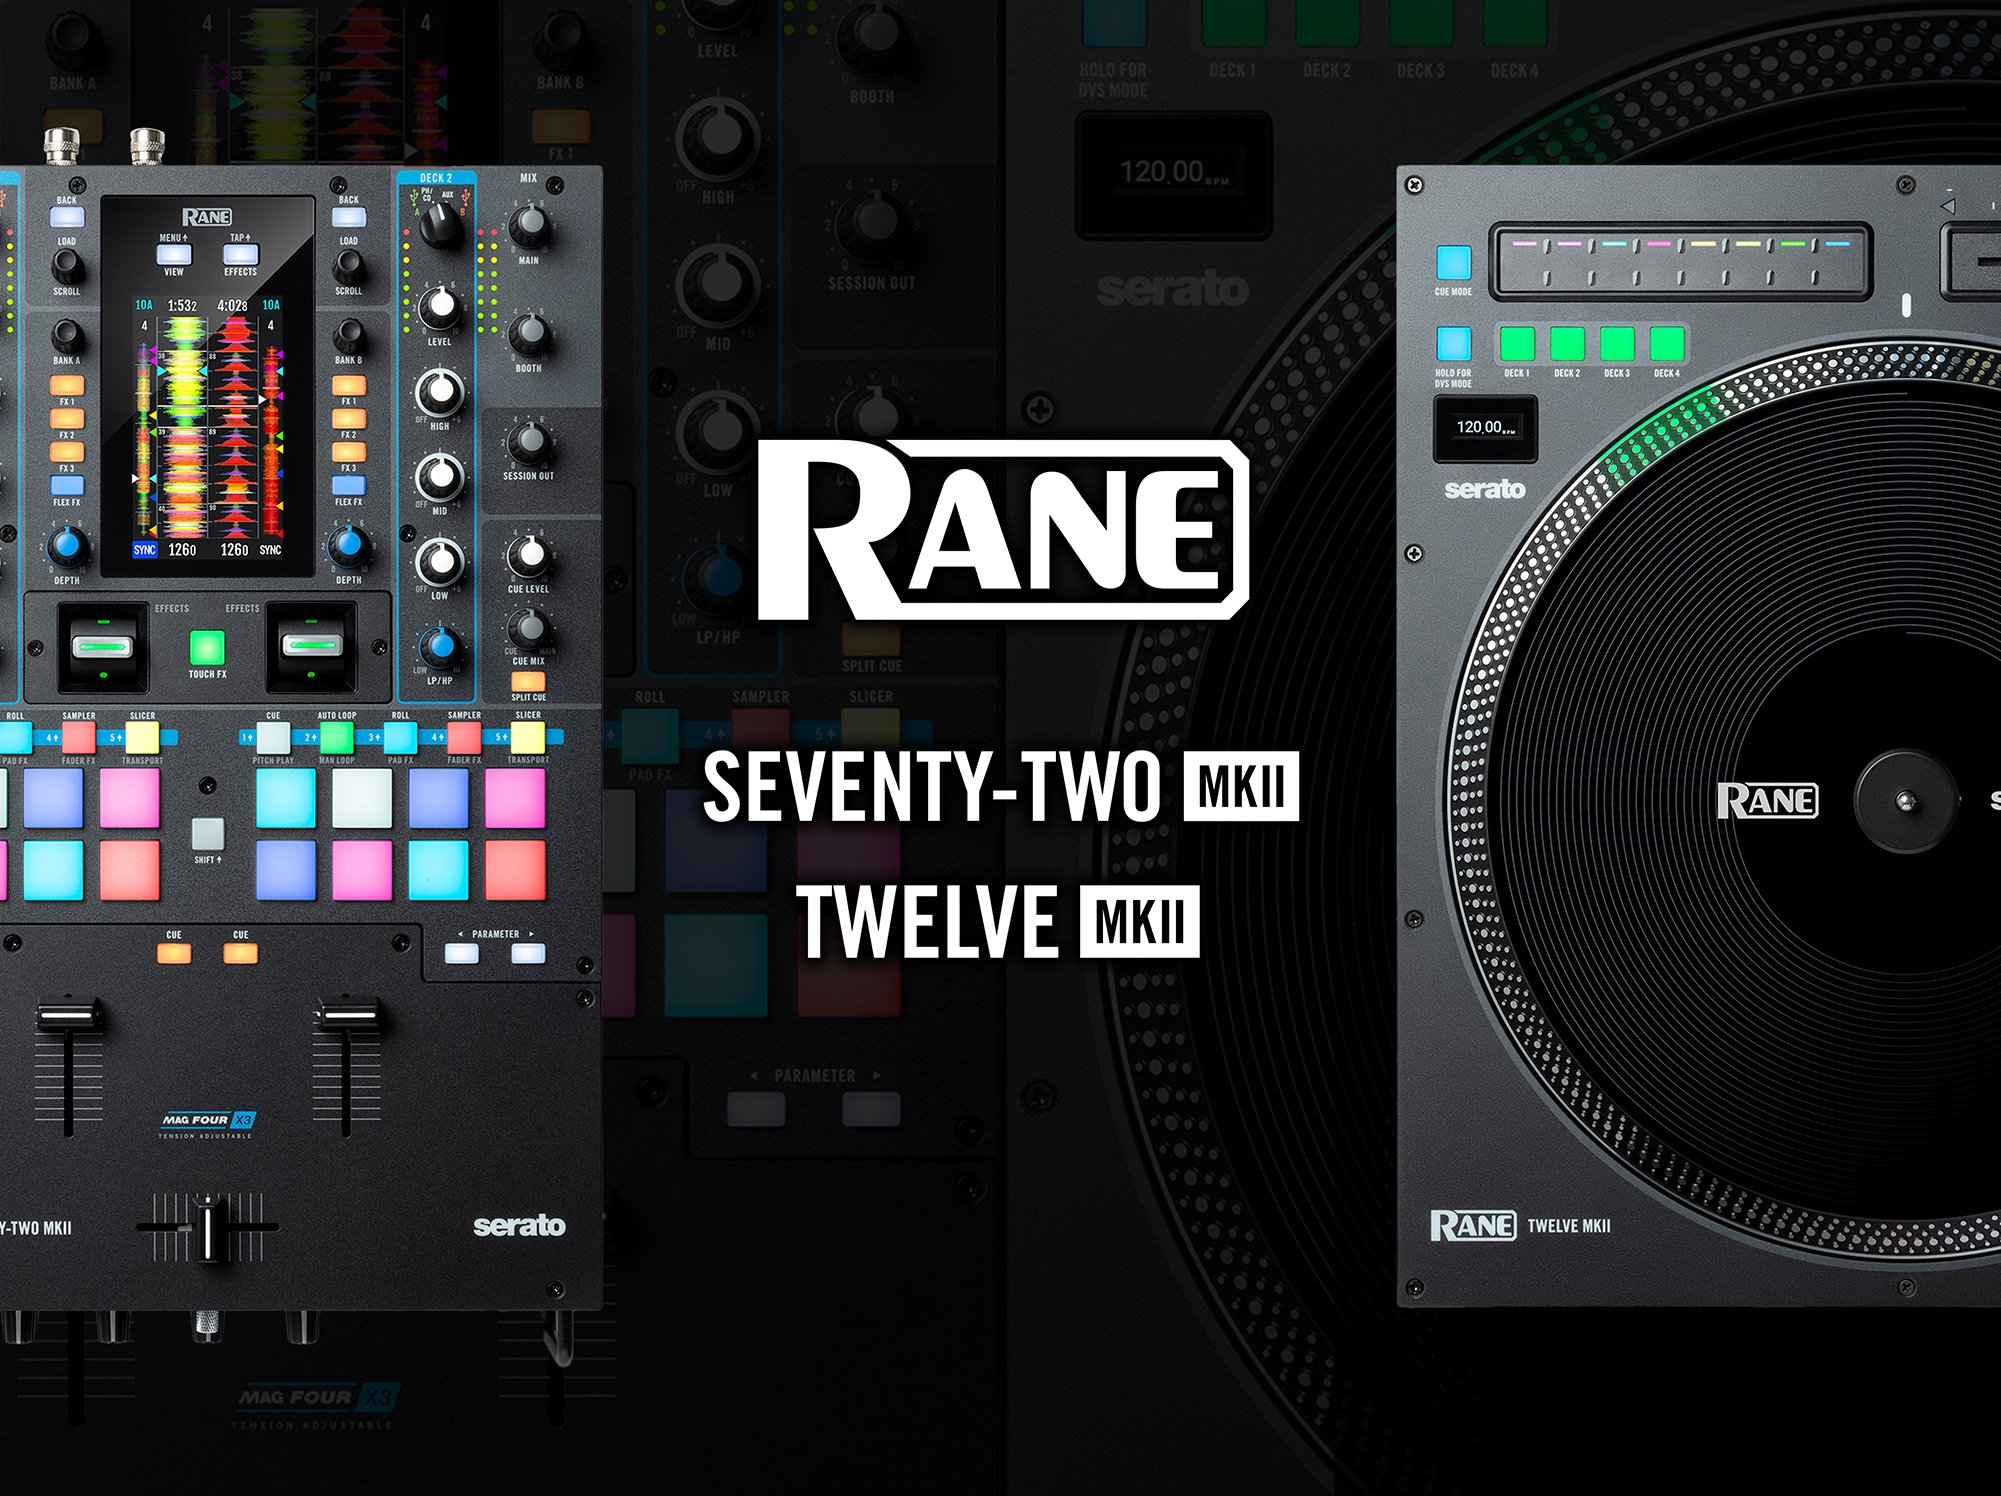 Rane SEVENTY-TWO MKII and TWELVE MKII for more than just Serato 6